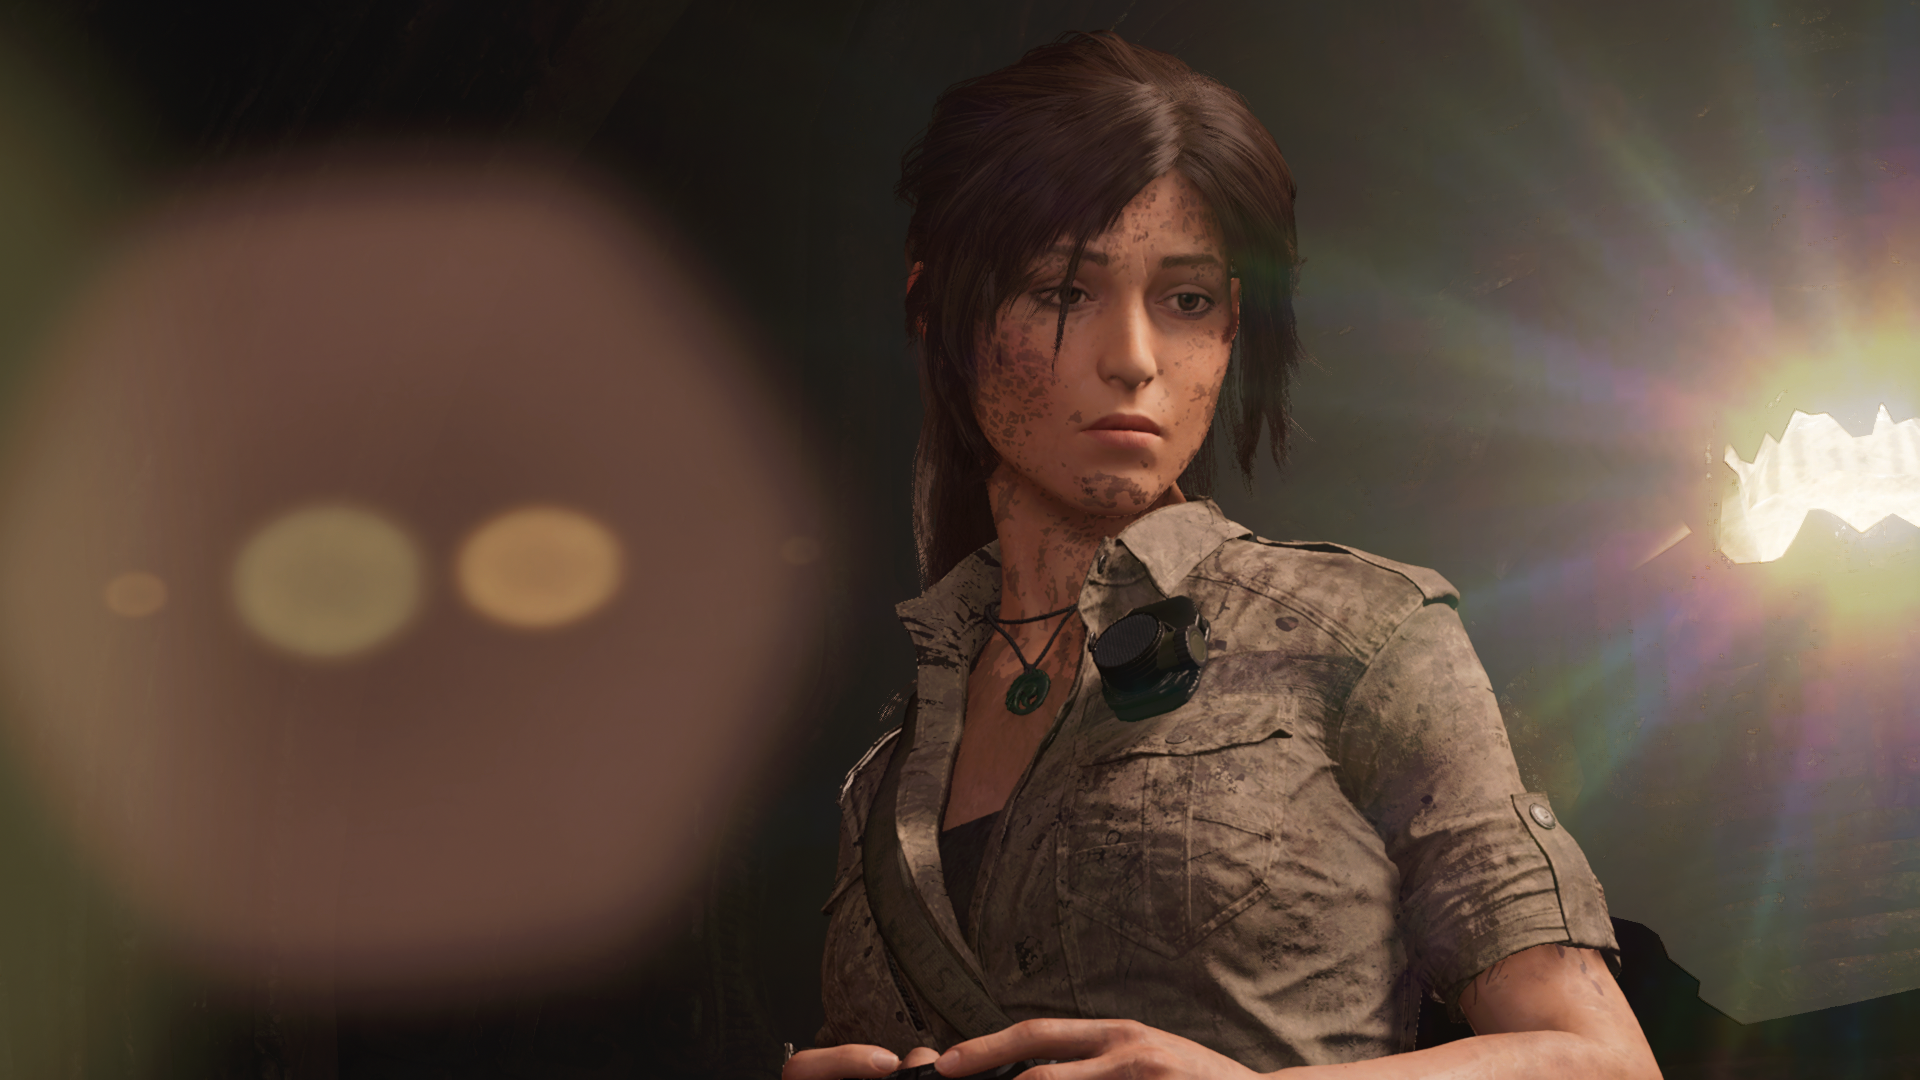 Shadow of the Tomb Raider Screenshot 2018.11.18 - 13.47.12.51.png - Shadow of the Tomb Raider